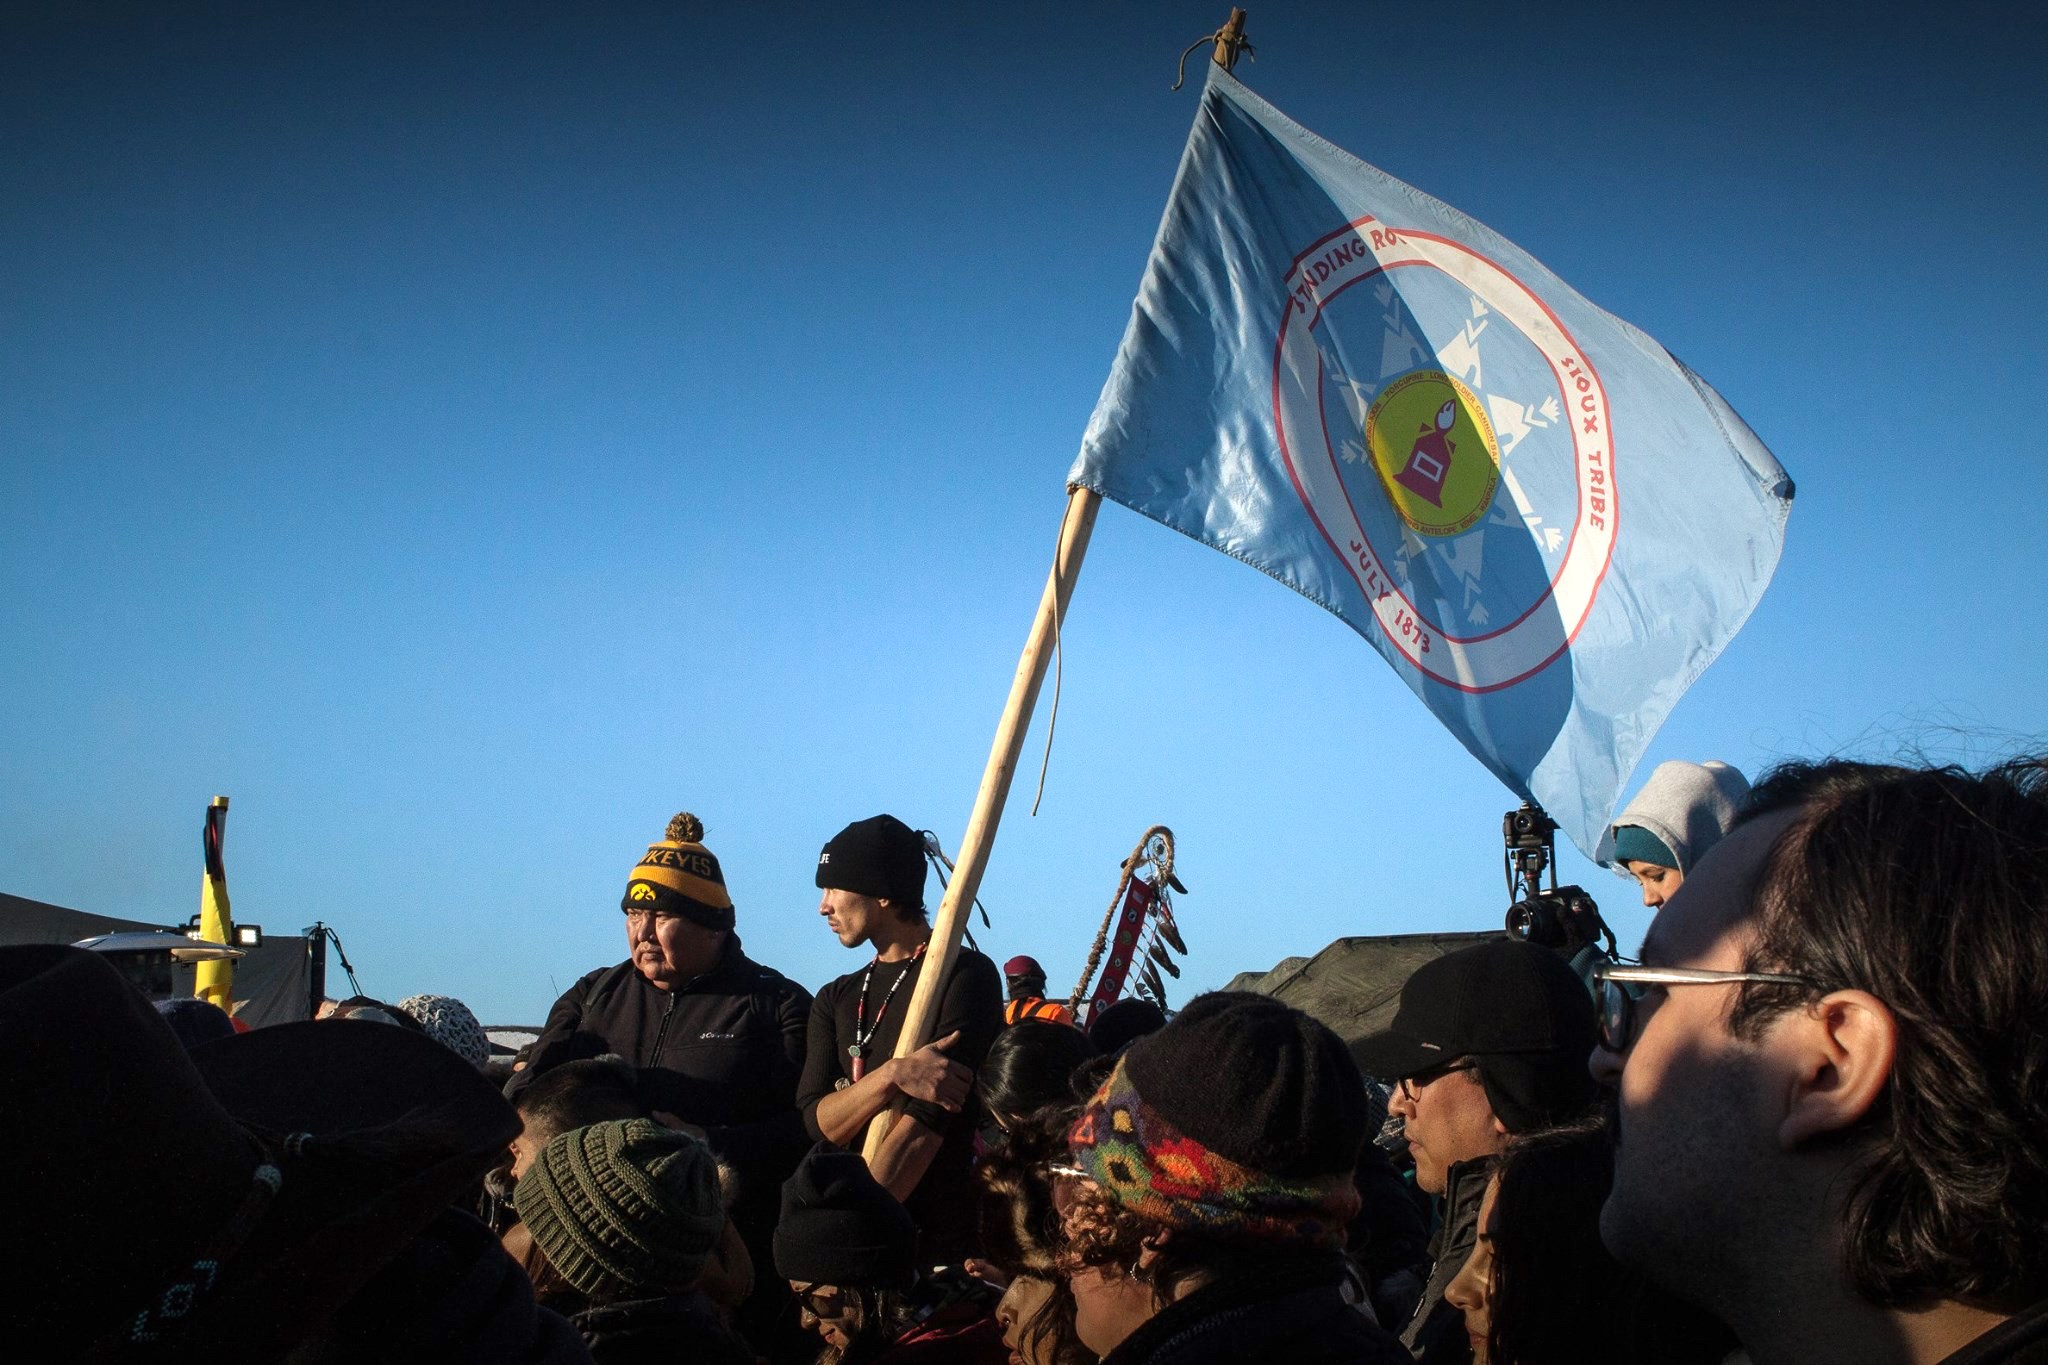 Dave Archambault: Standing Rock Sioux Tribe thanks many allies